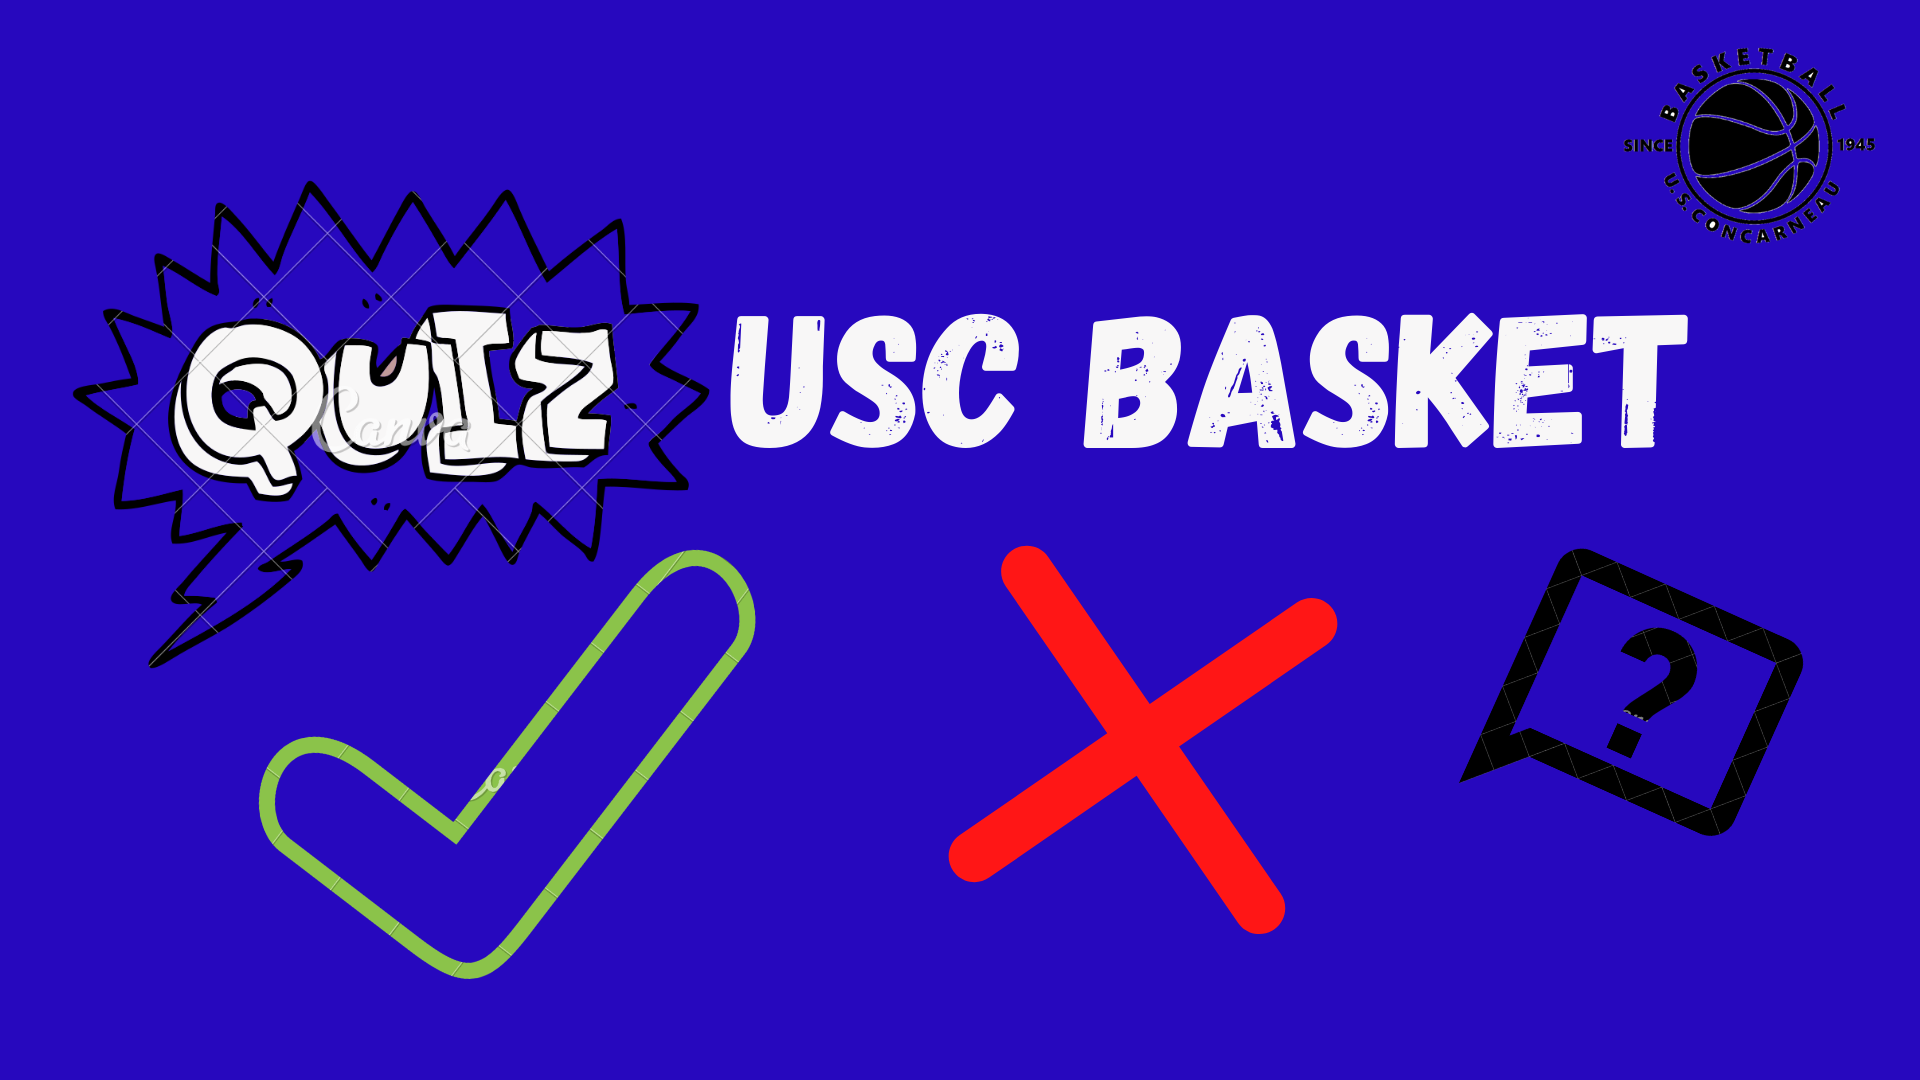 Quiz usc basket